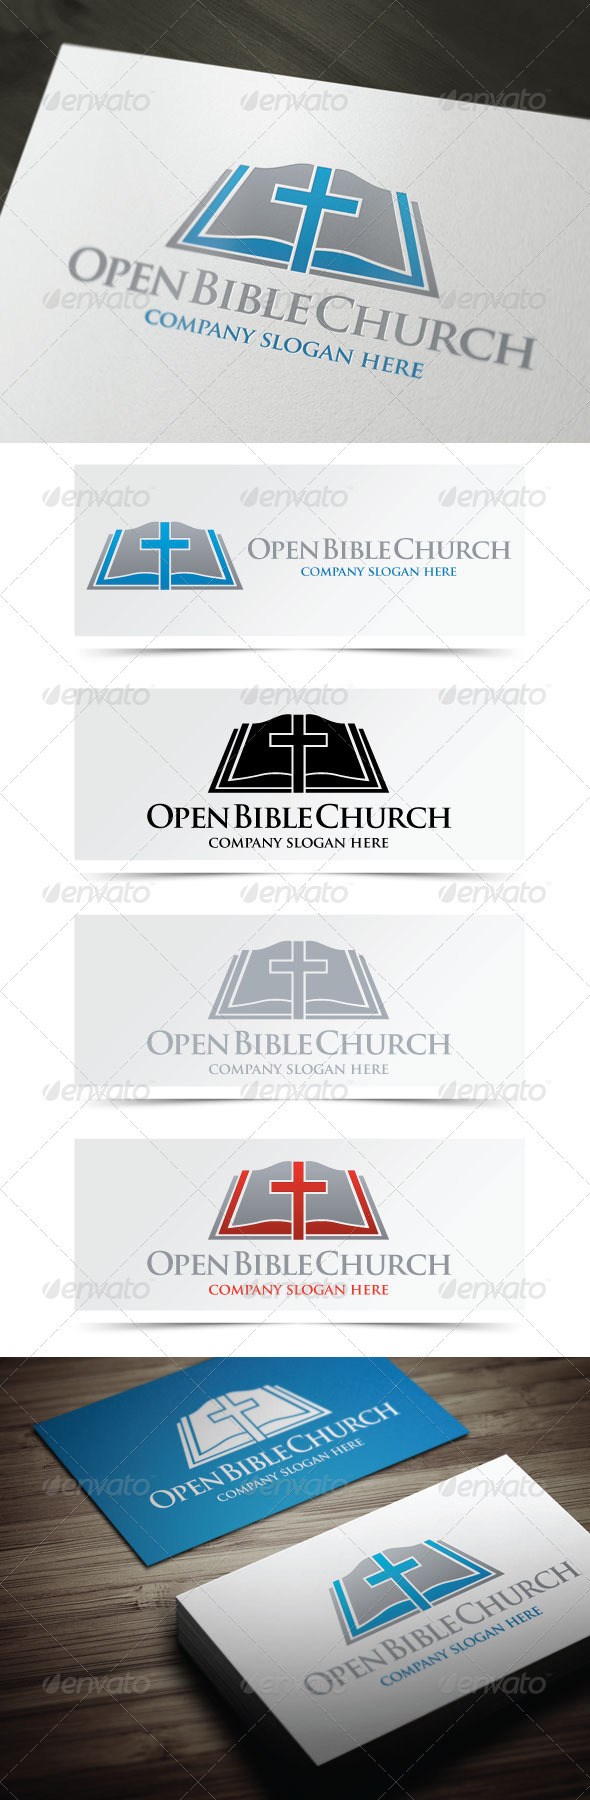 GraphicRiver Open Bible Church 4843641